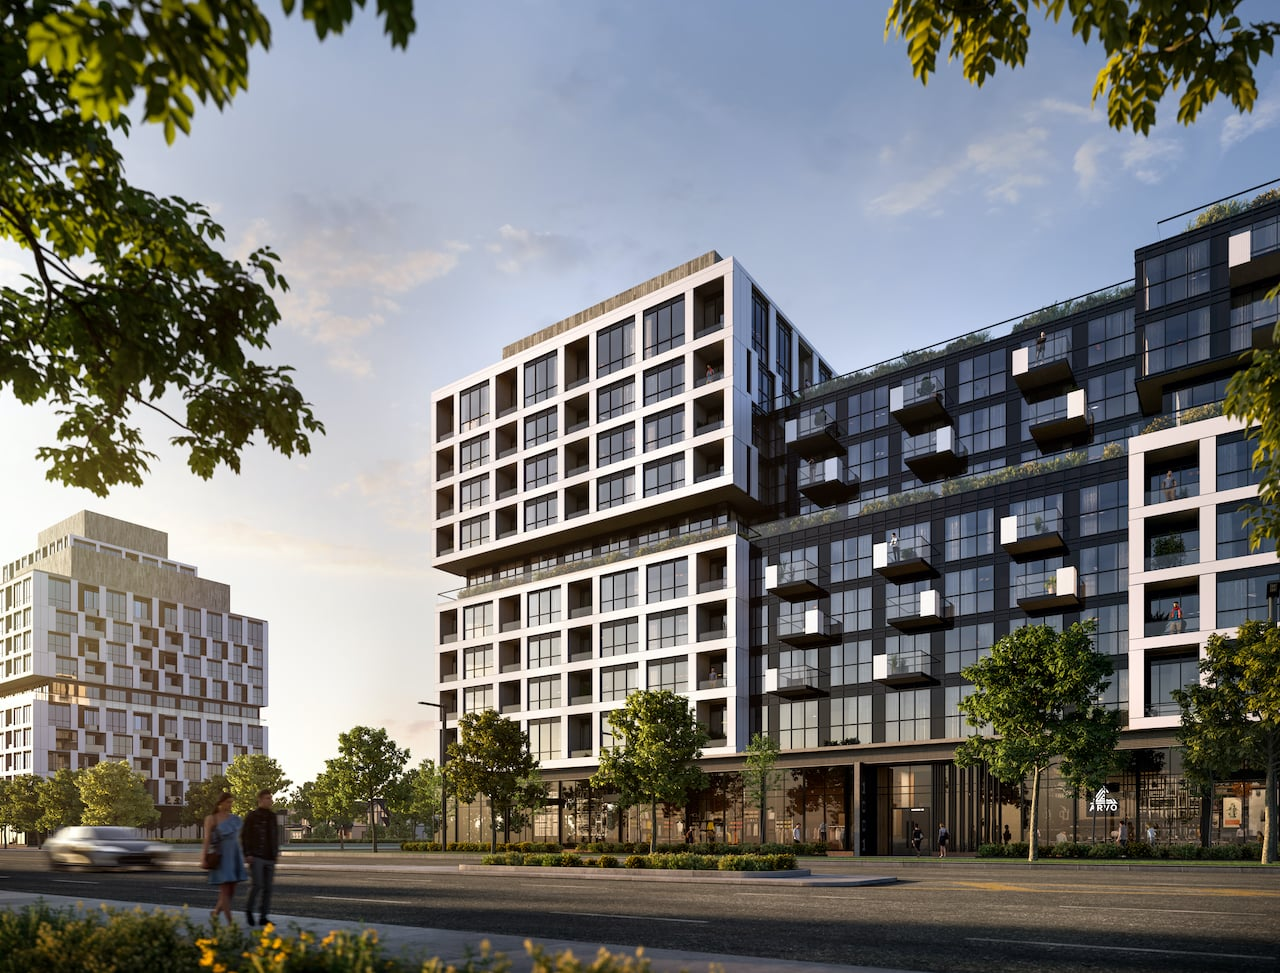 Rendering of Verge Condos exterior in the afternoon